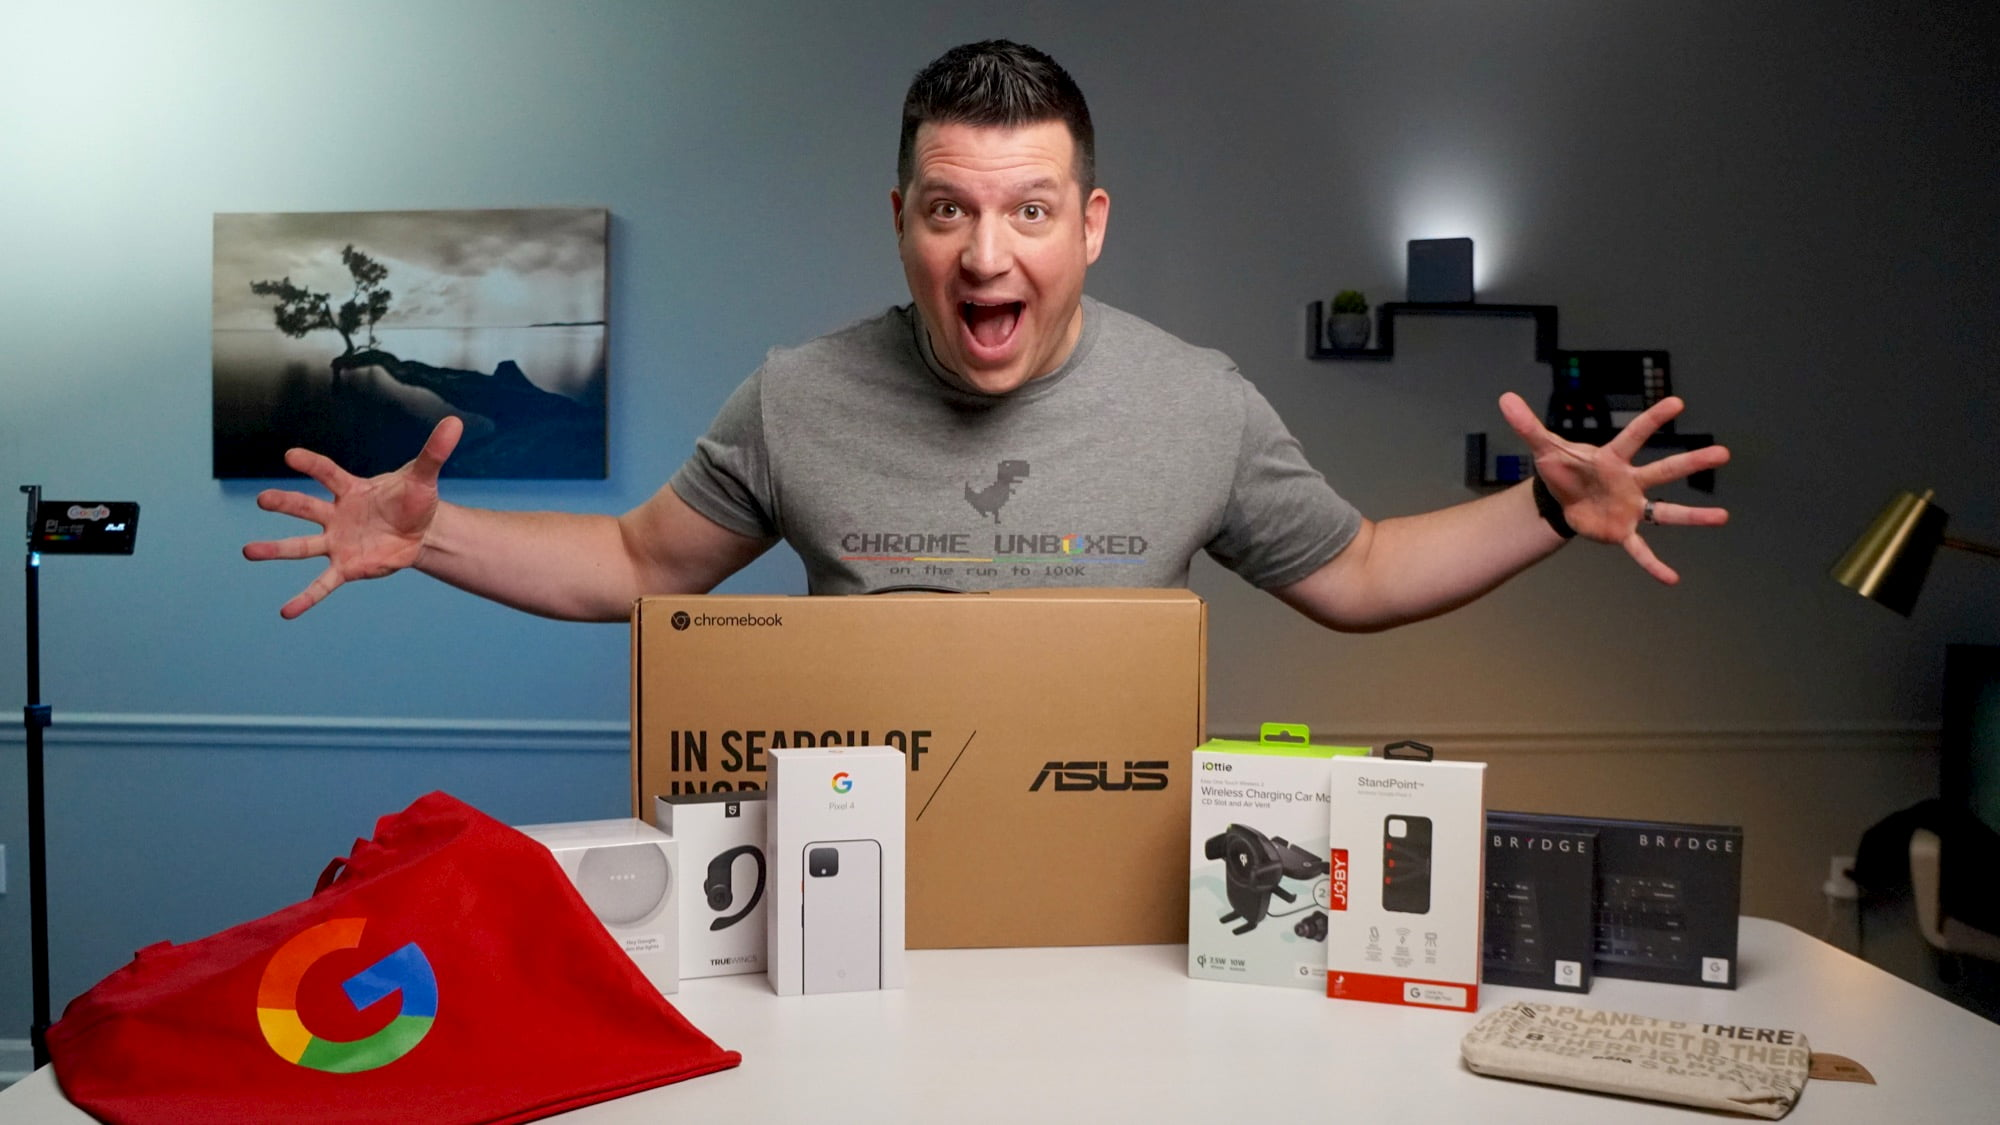 On the run to 100K: the biggest giveaway in Chrome Unboxed history